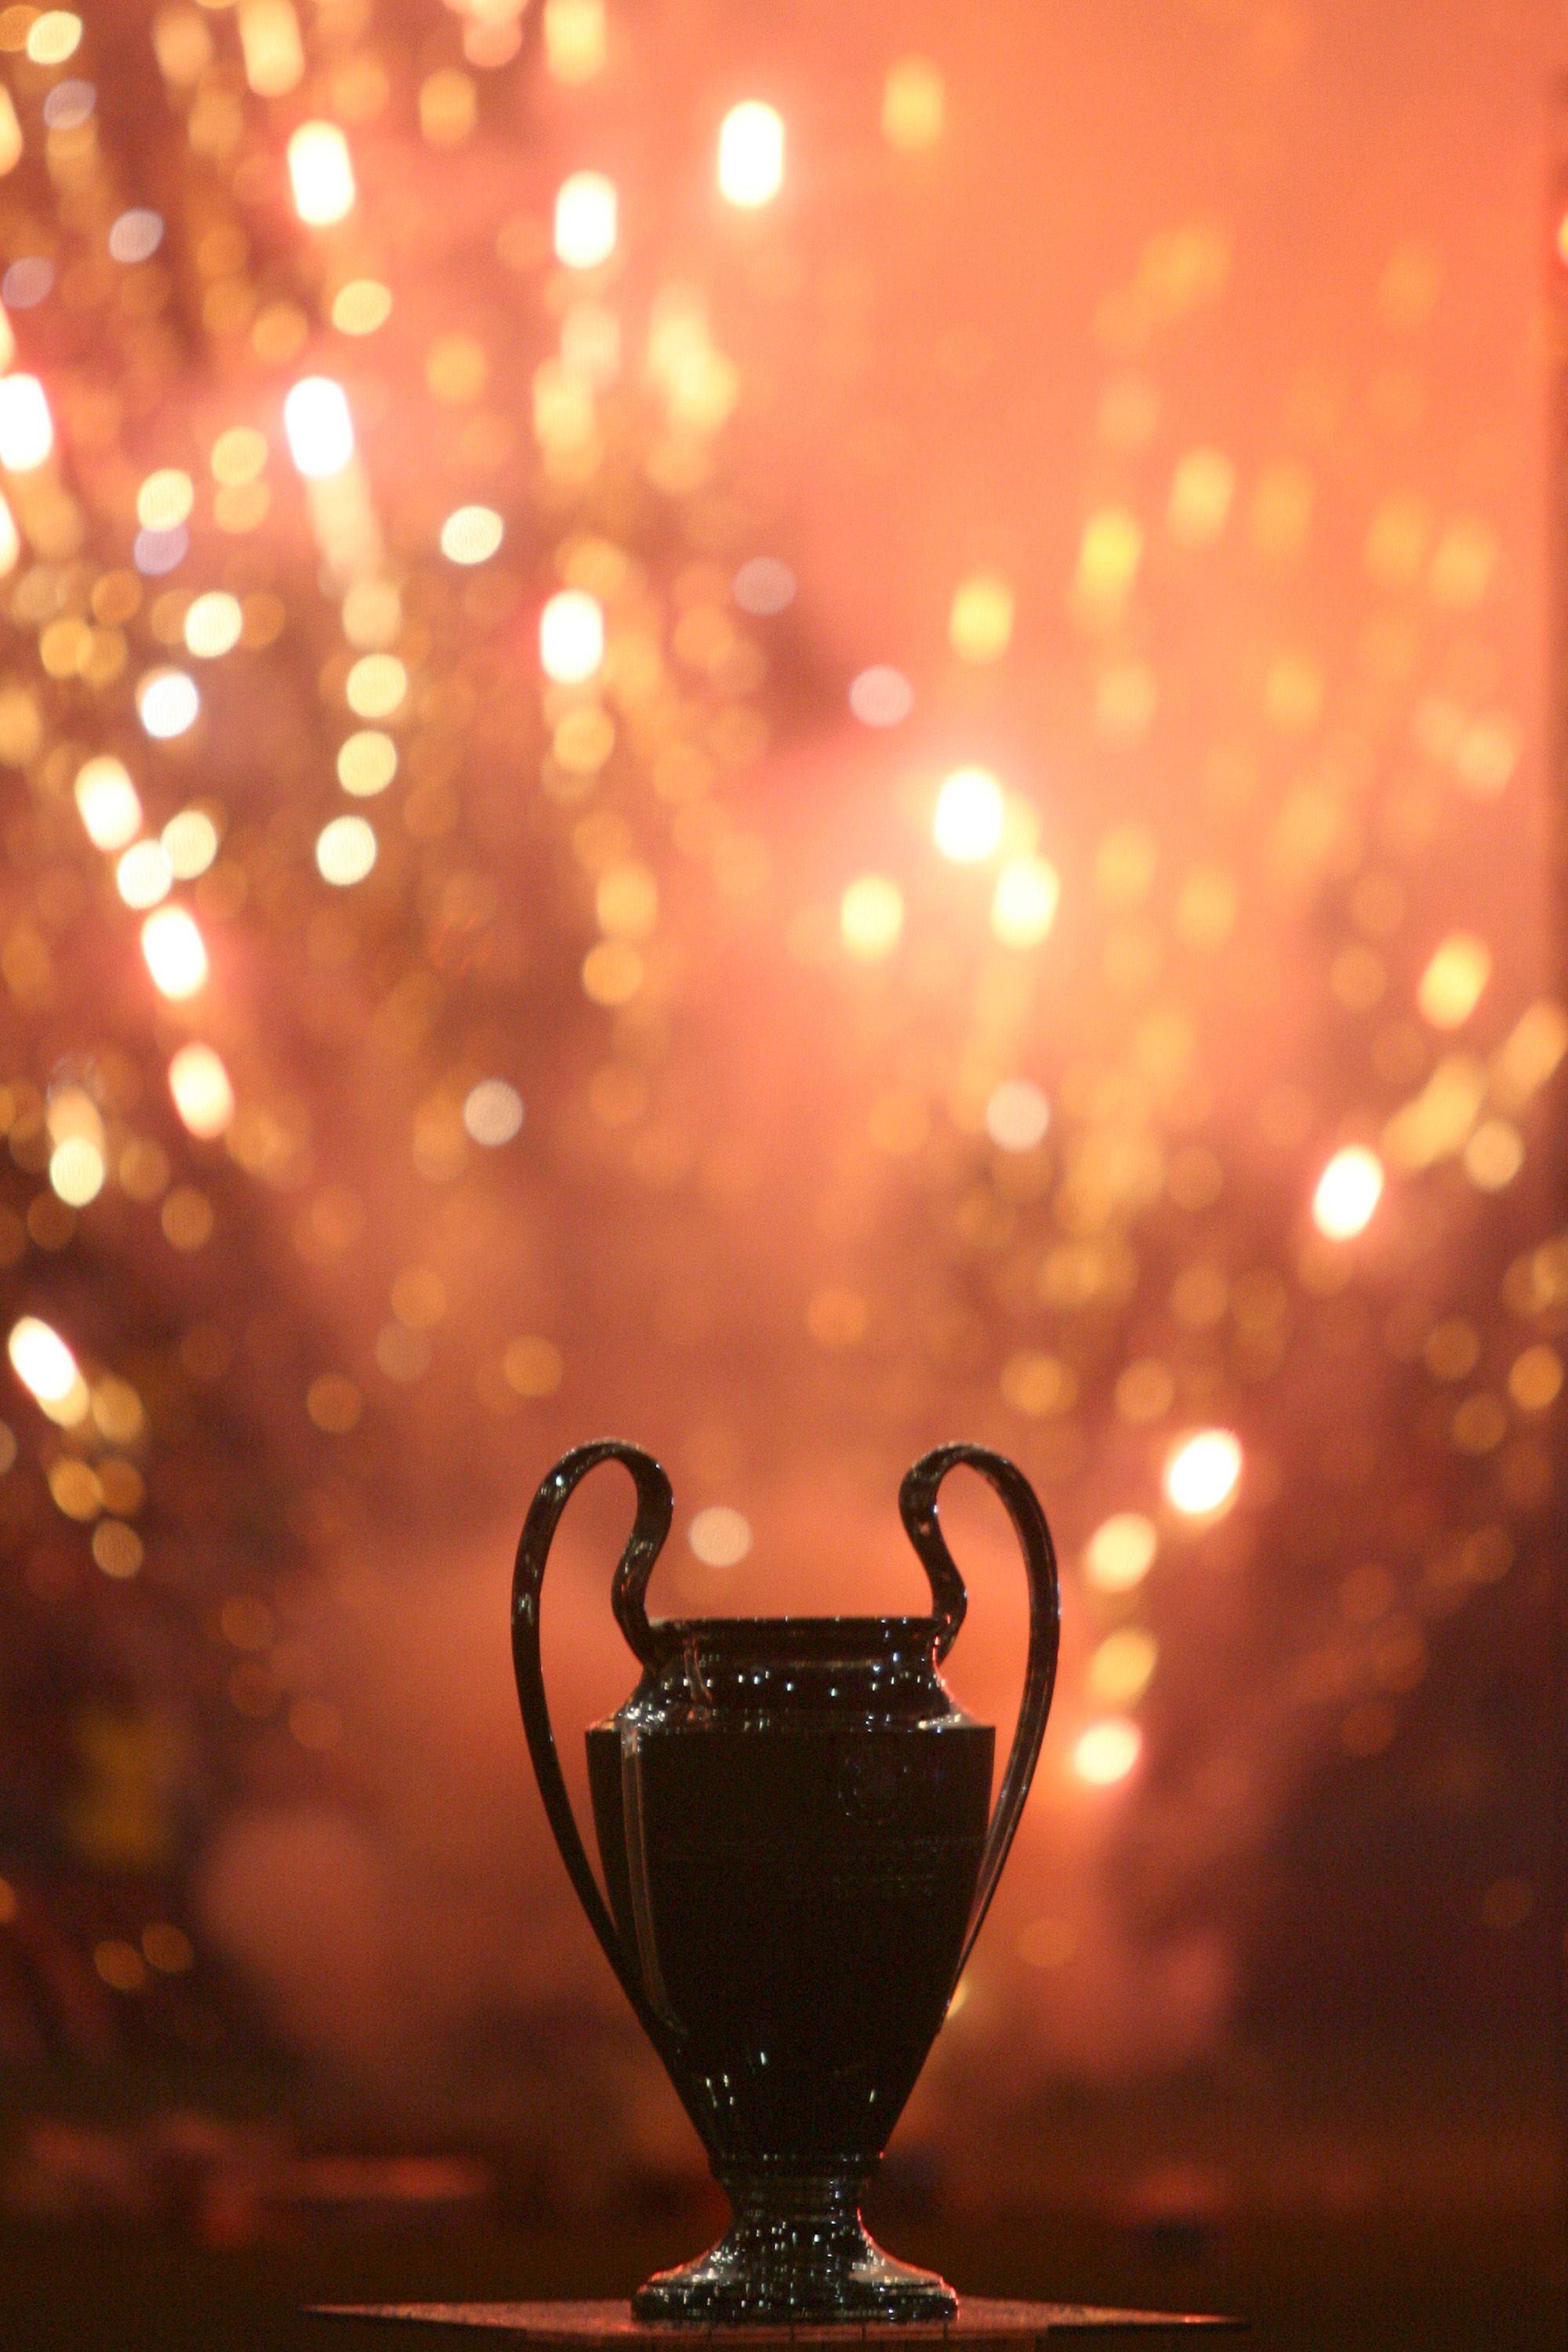 MILAN, ITALY - MAY 25: The silhouette of the Champion's League trophy is displayed during the Champion League celebration party at San Siro Stadium on May 25, 2007 in Milan, Italy. (Photo by Getty Images)